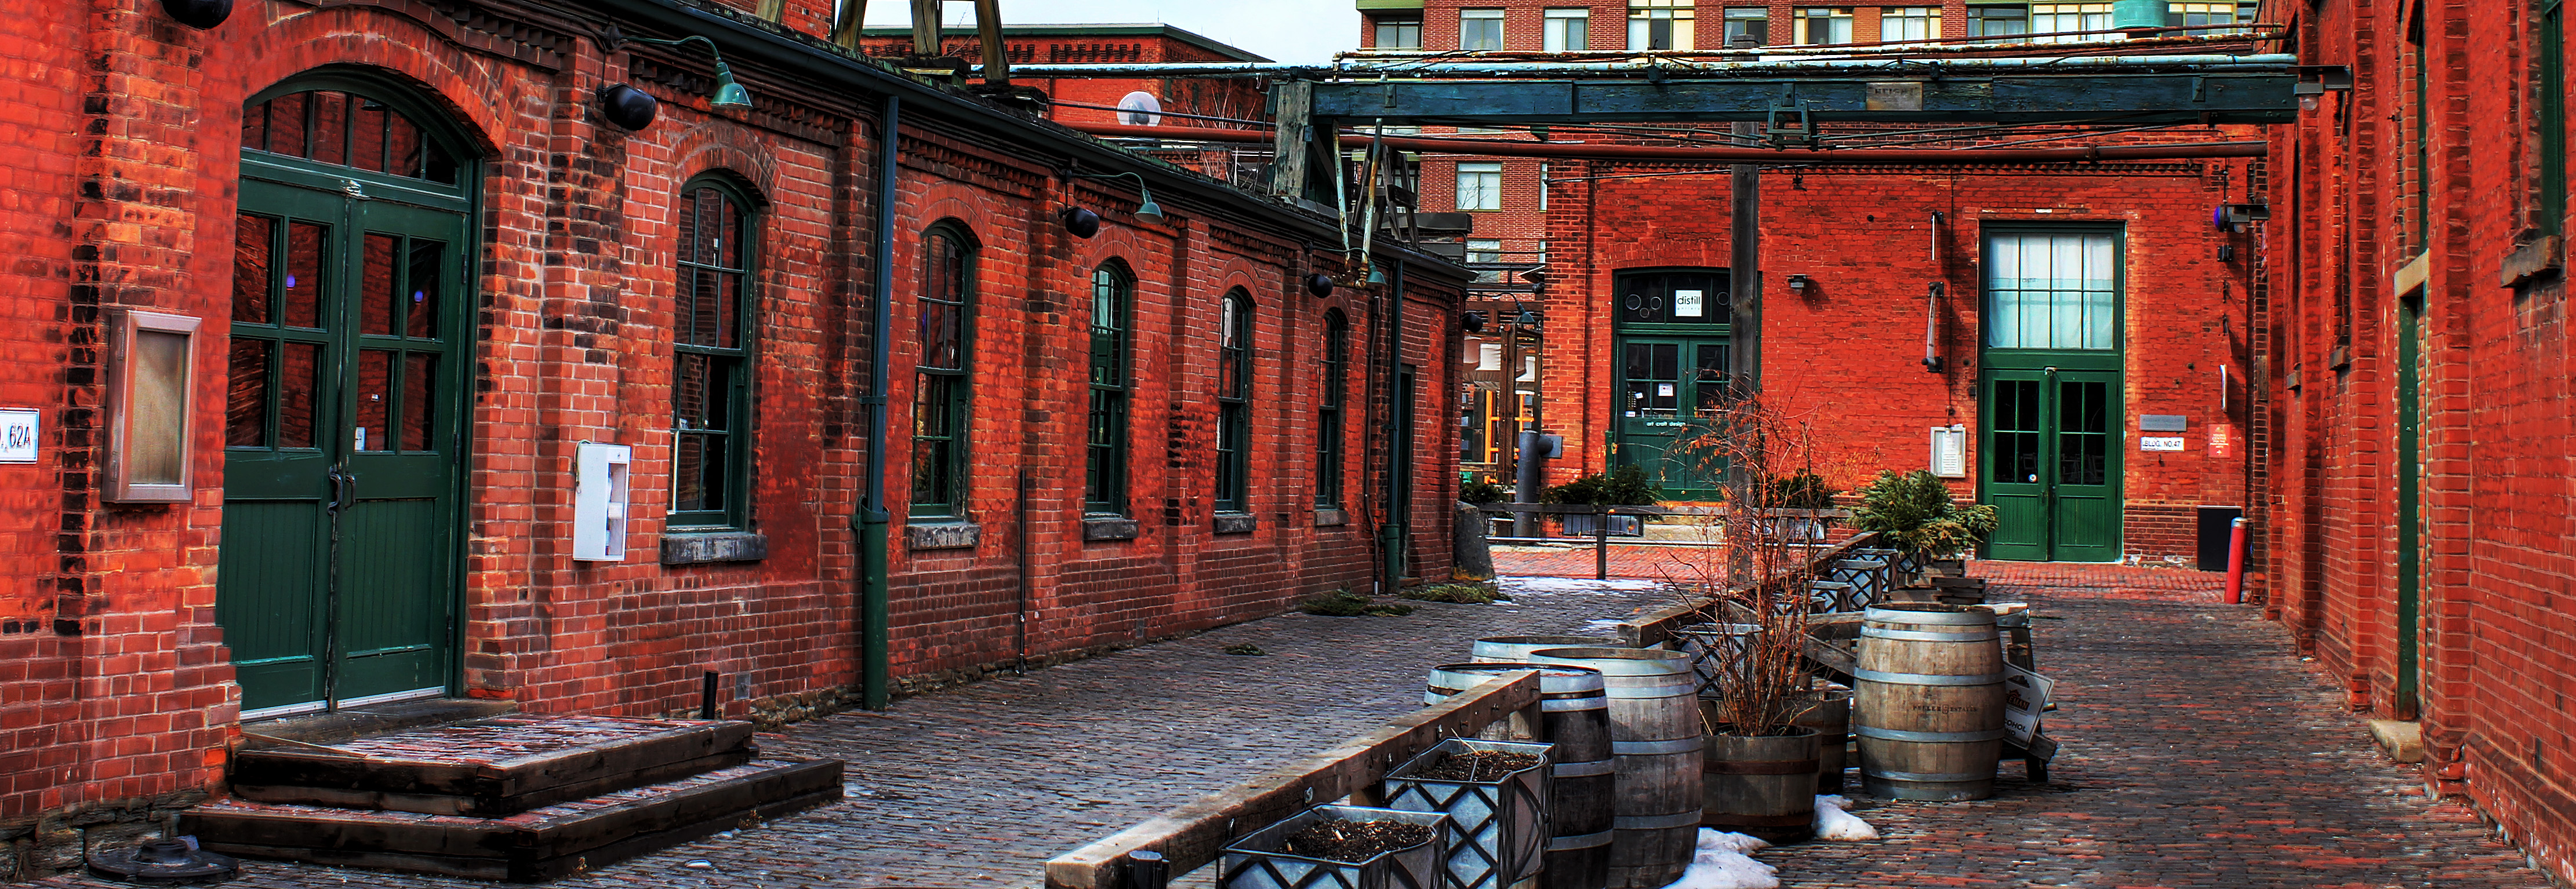 Distillery_District_Toronto_Ontario_Cana